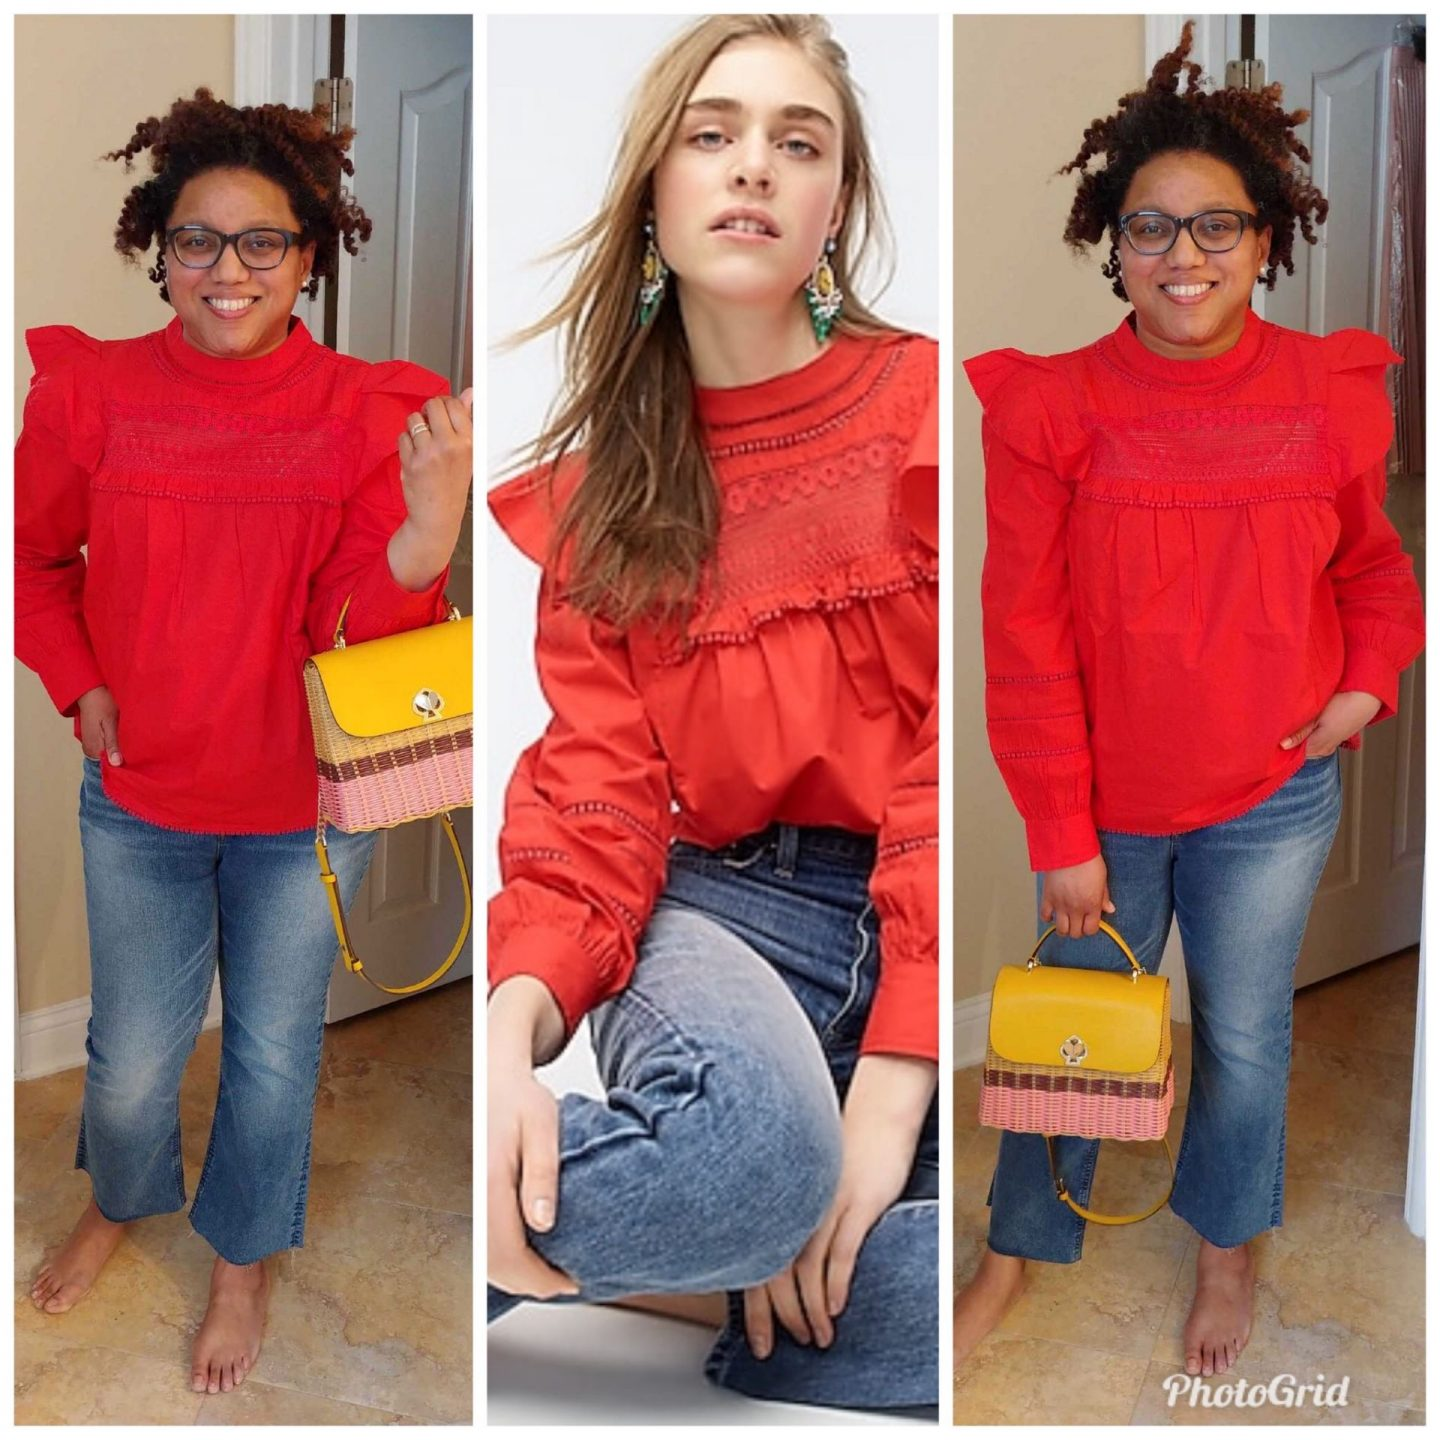 J Crew Crochet Lace Ruffle Top styled by top Kentucky fashion blogger, Really Rynetta